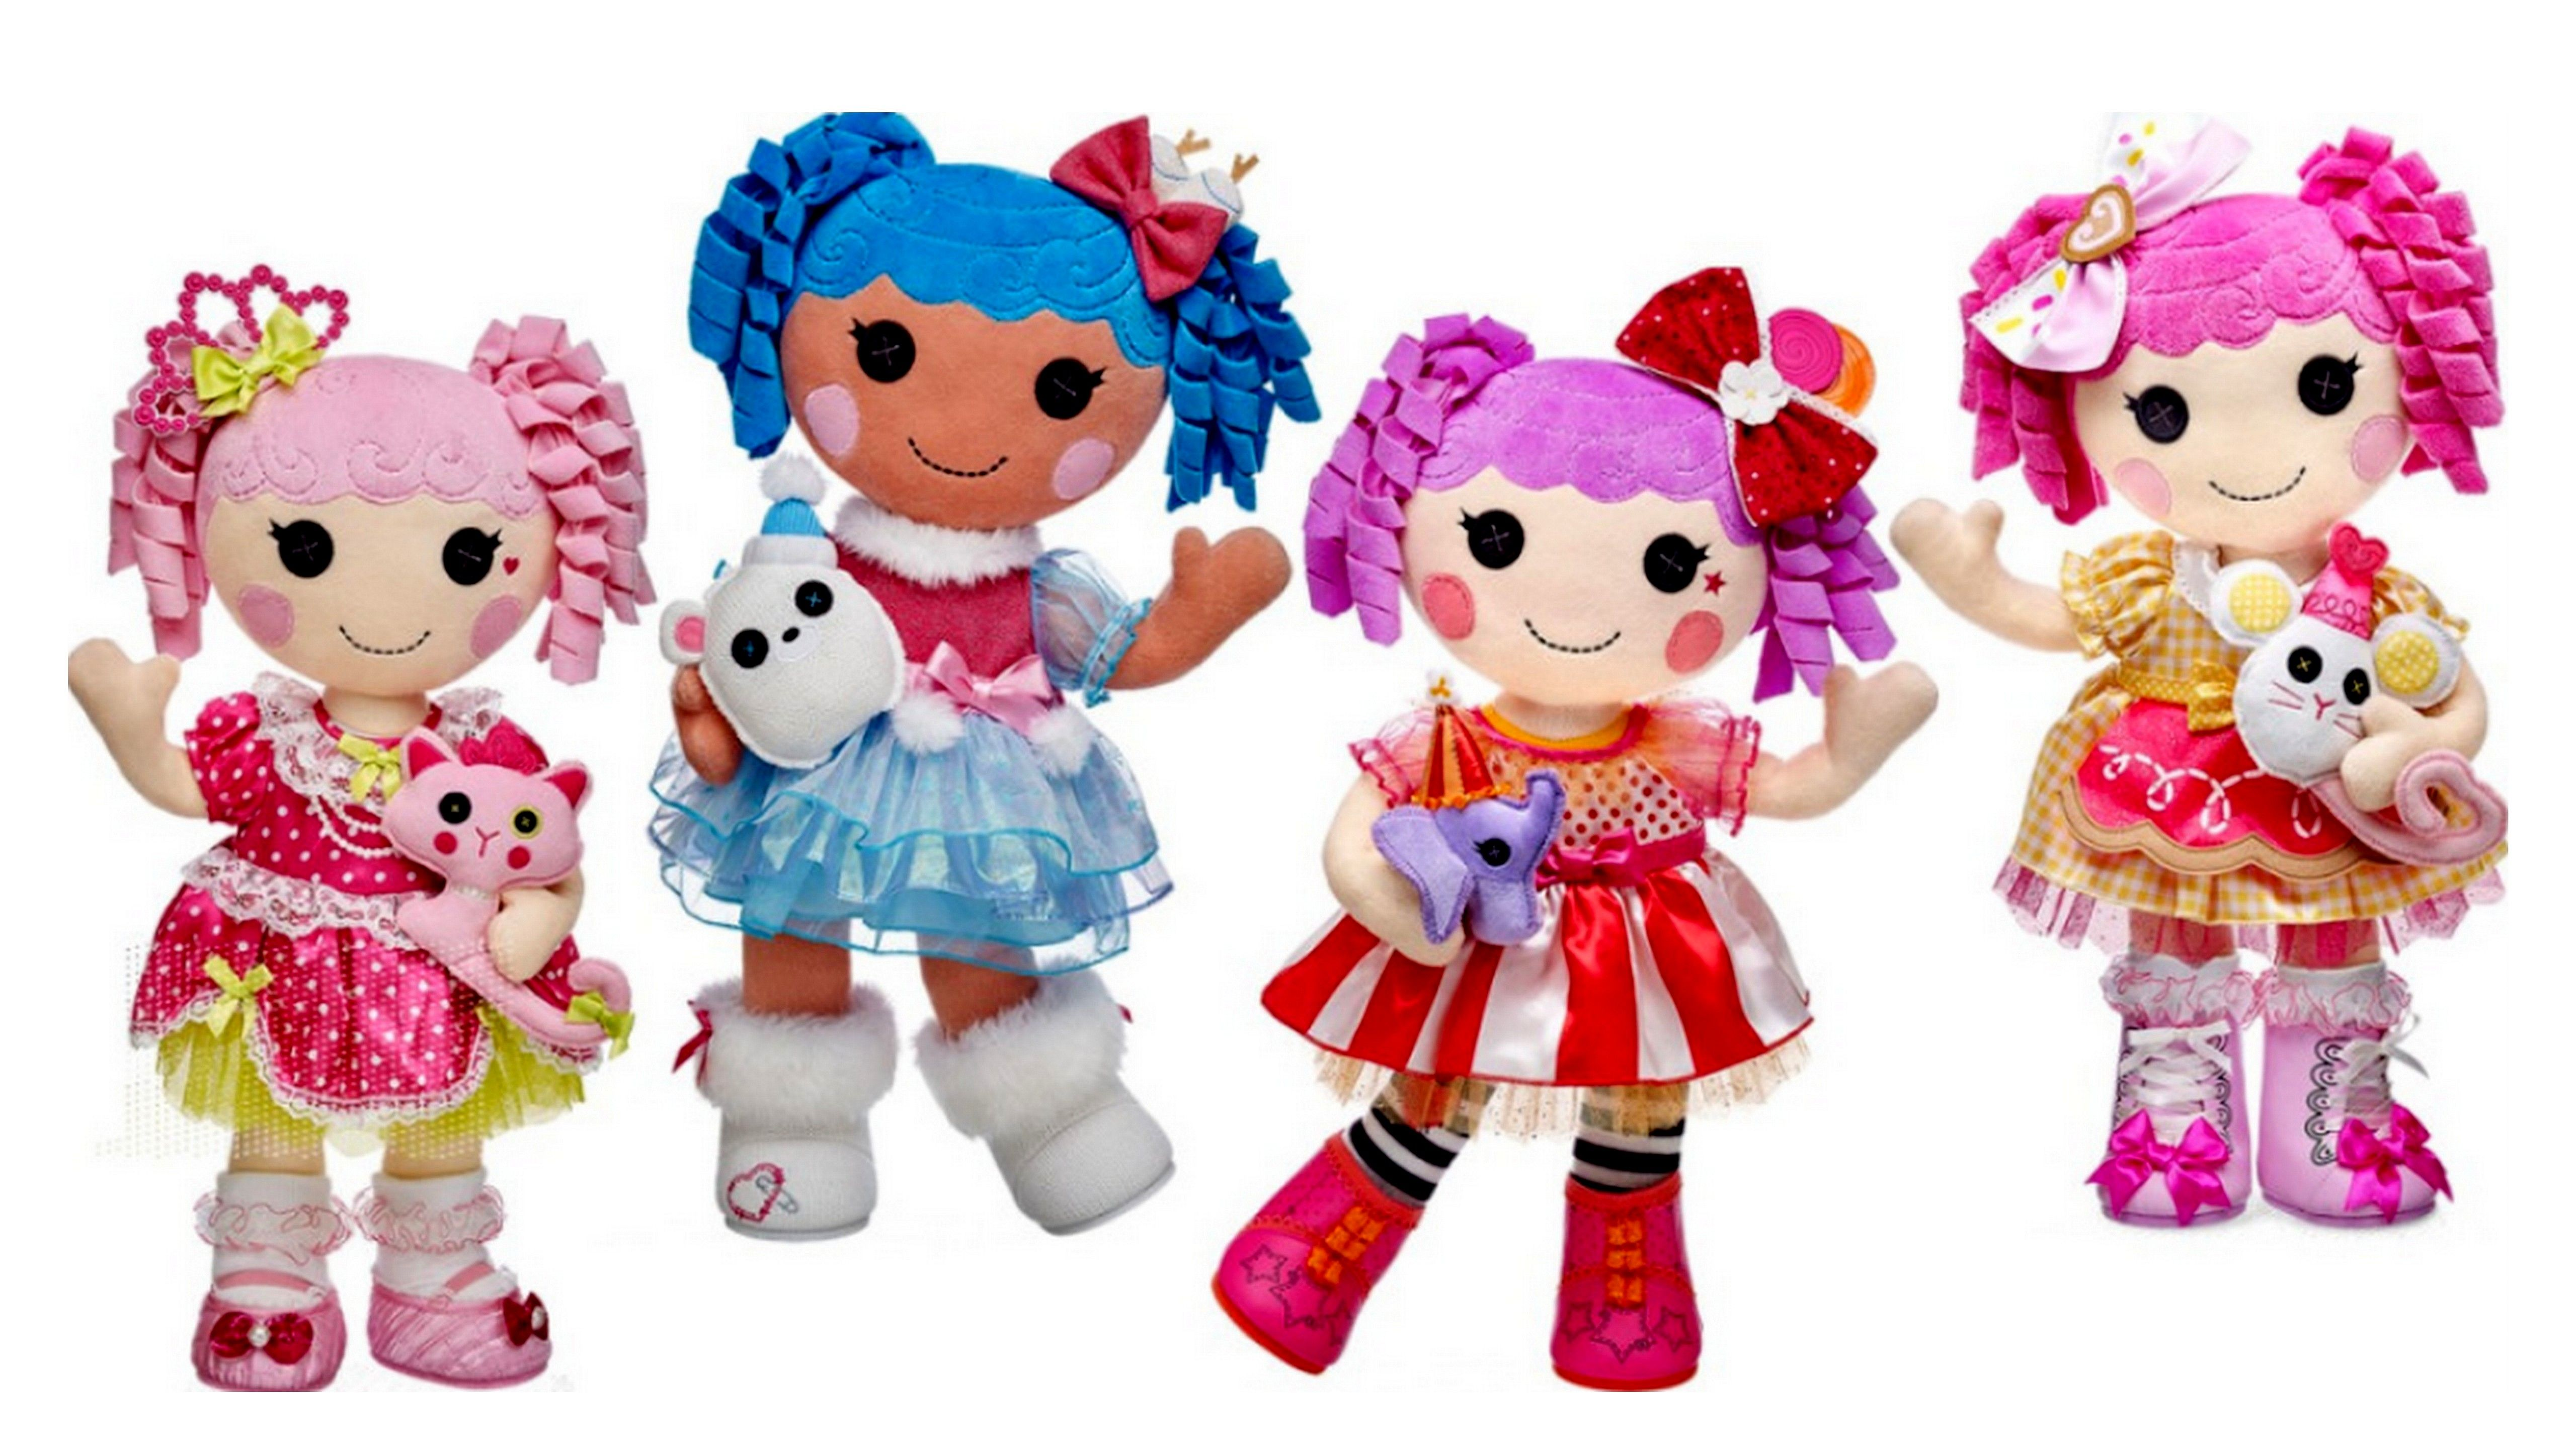 1990a72eea1 Build-a-Bear Lalaloopsy Large 21 inch Rag Dolls and Outfits. Choose Stuffed